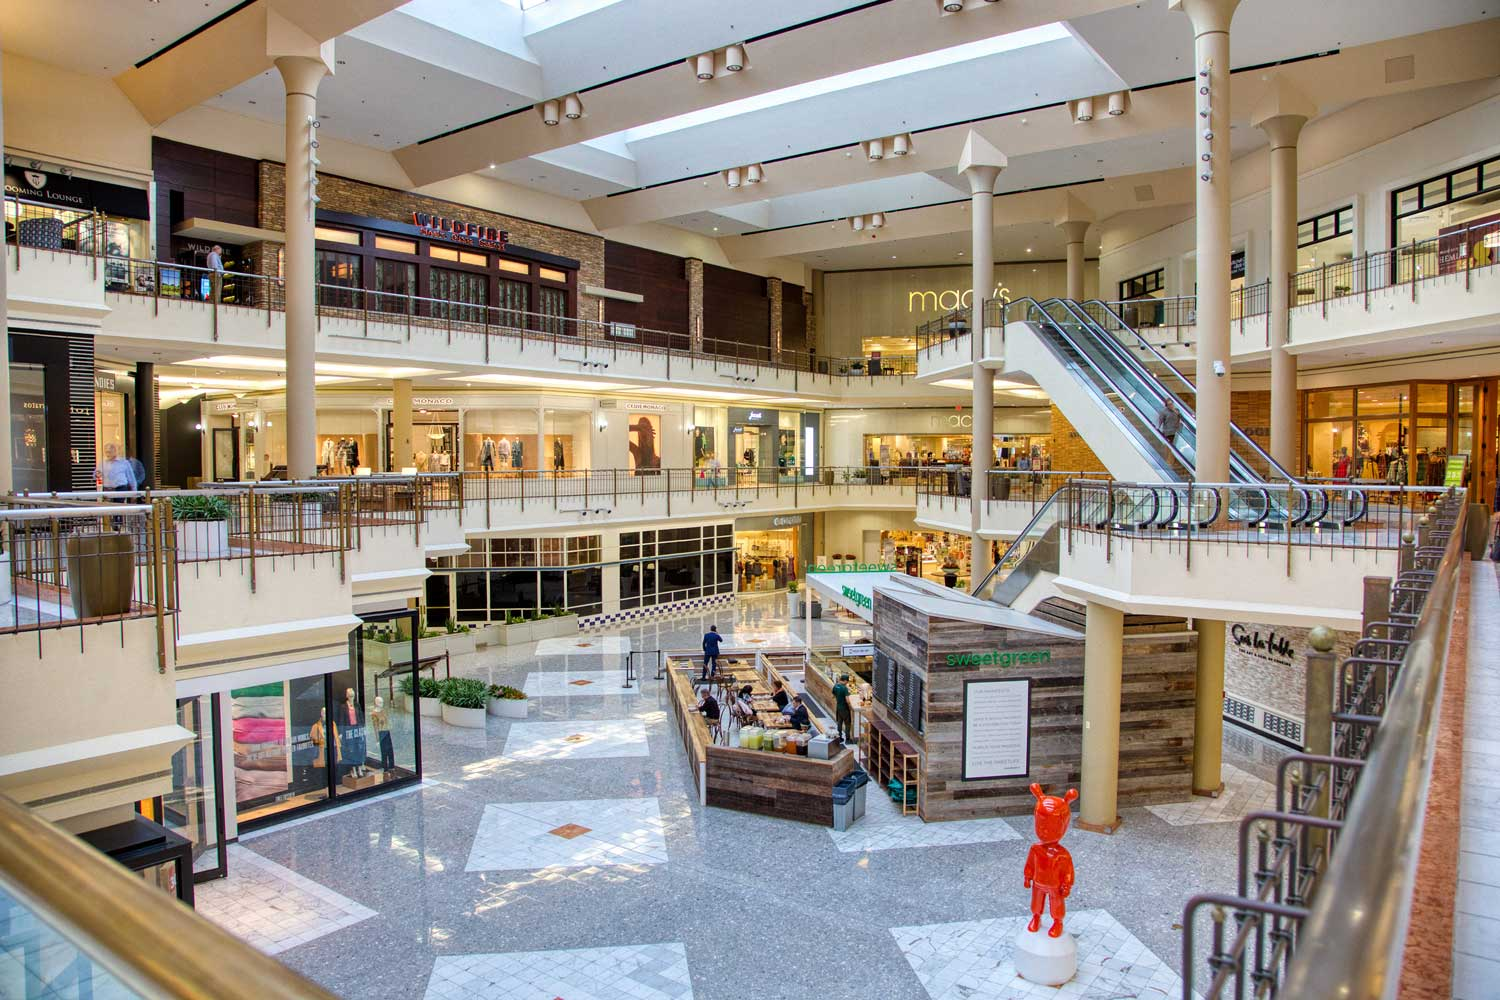 Tysons Galleria Mall is 15 minutes from Barcroft View Apartments